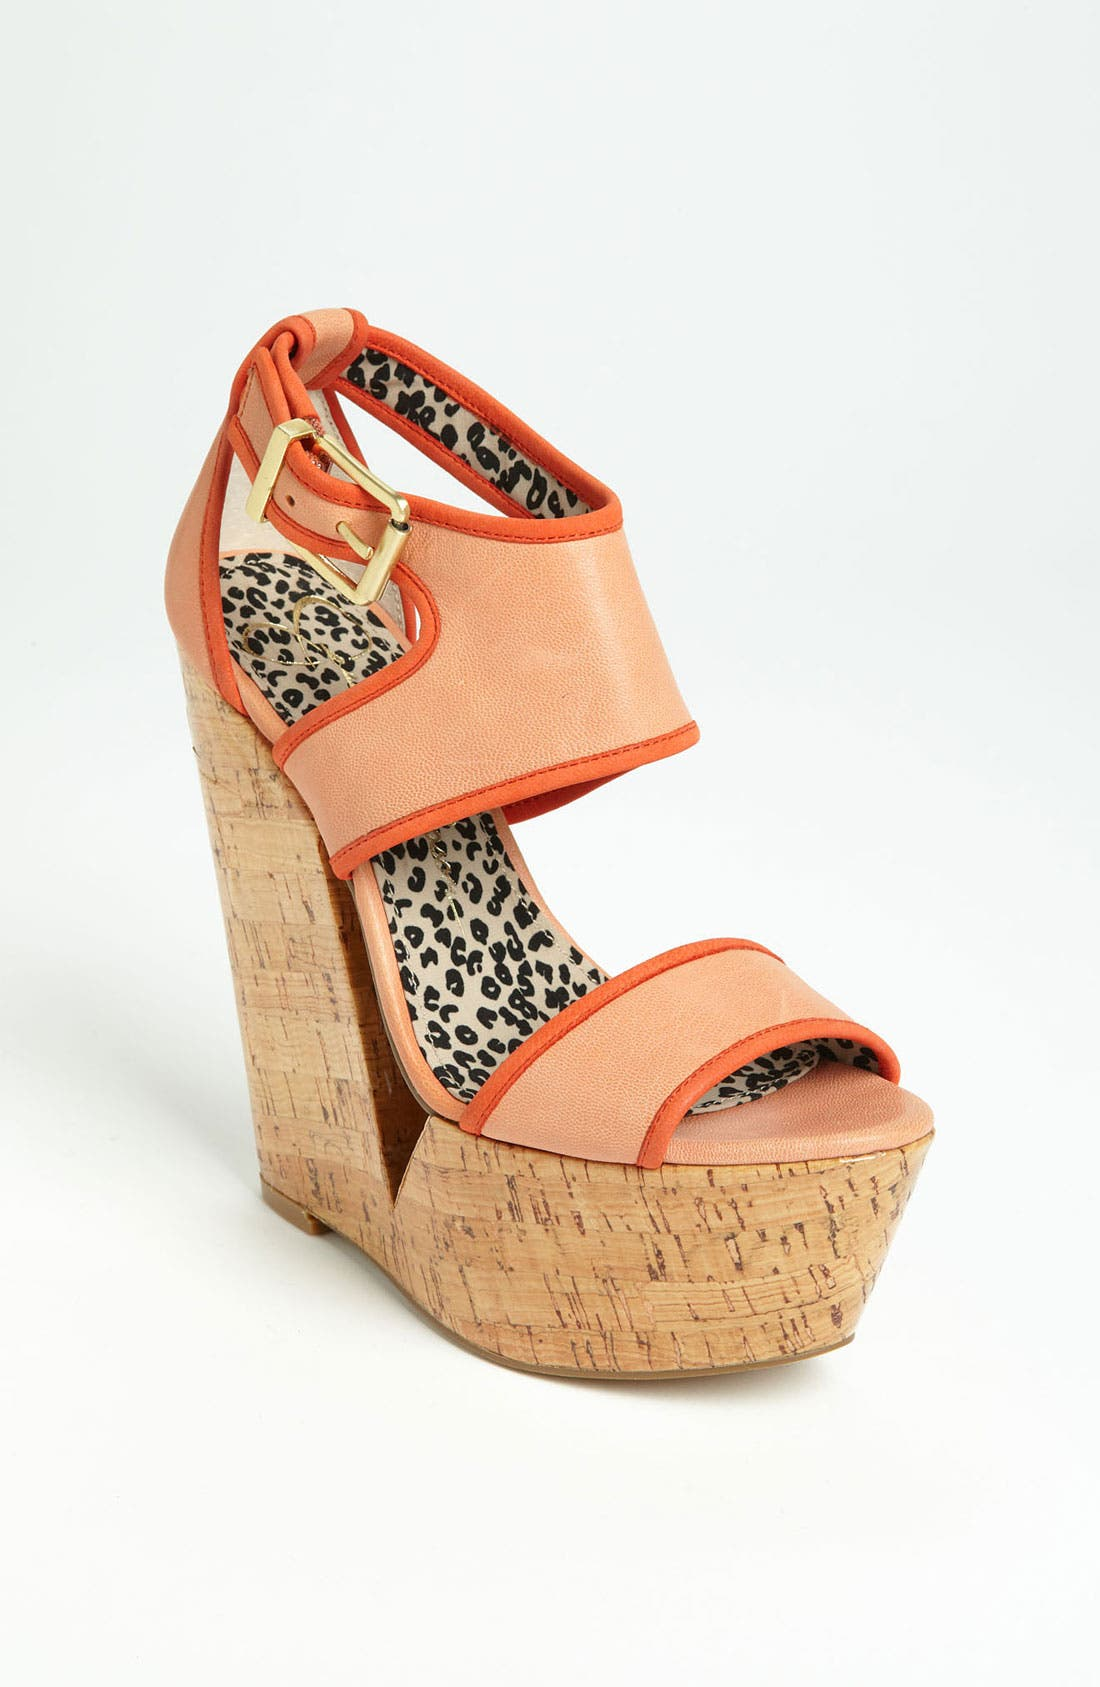 Alternate Image 1 Selected - Jessica Simpson 'Selin' Sandal